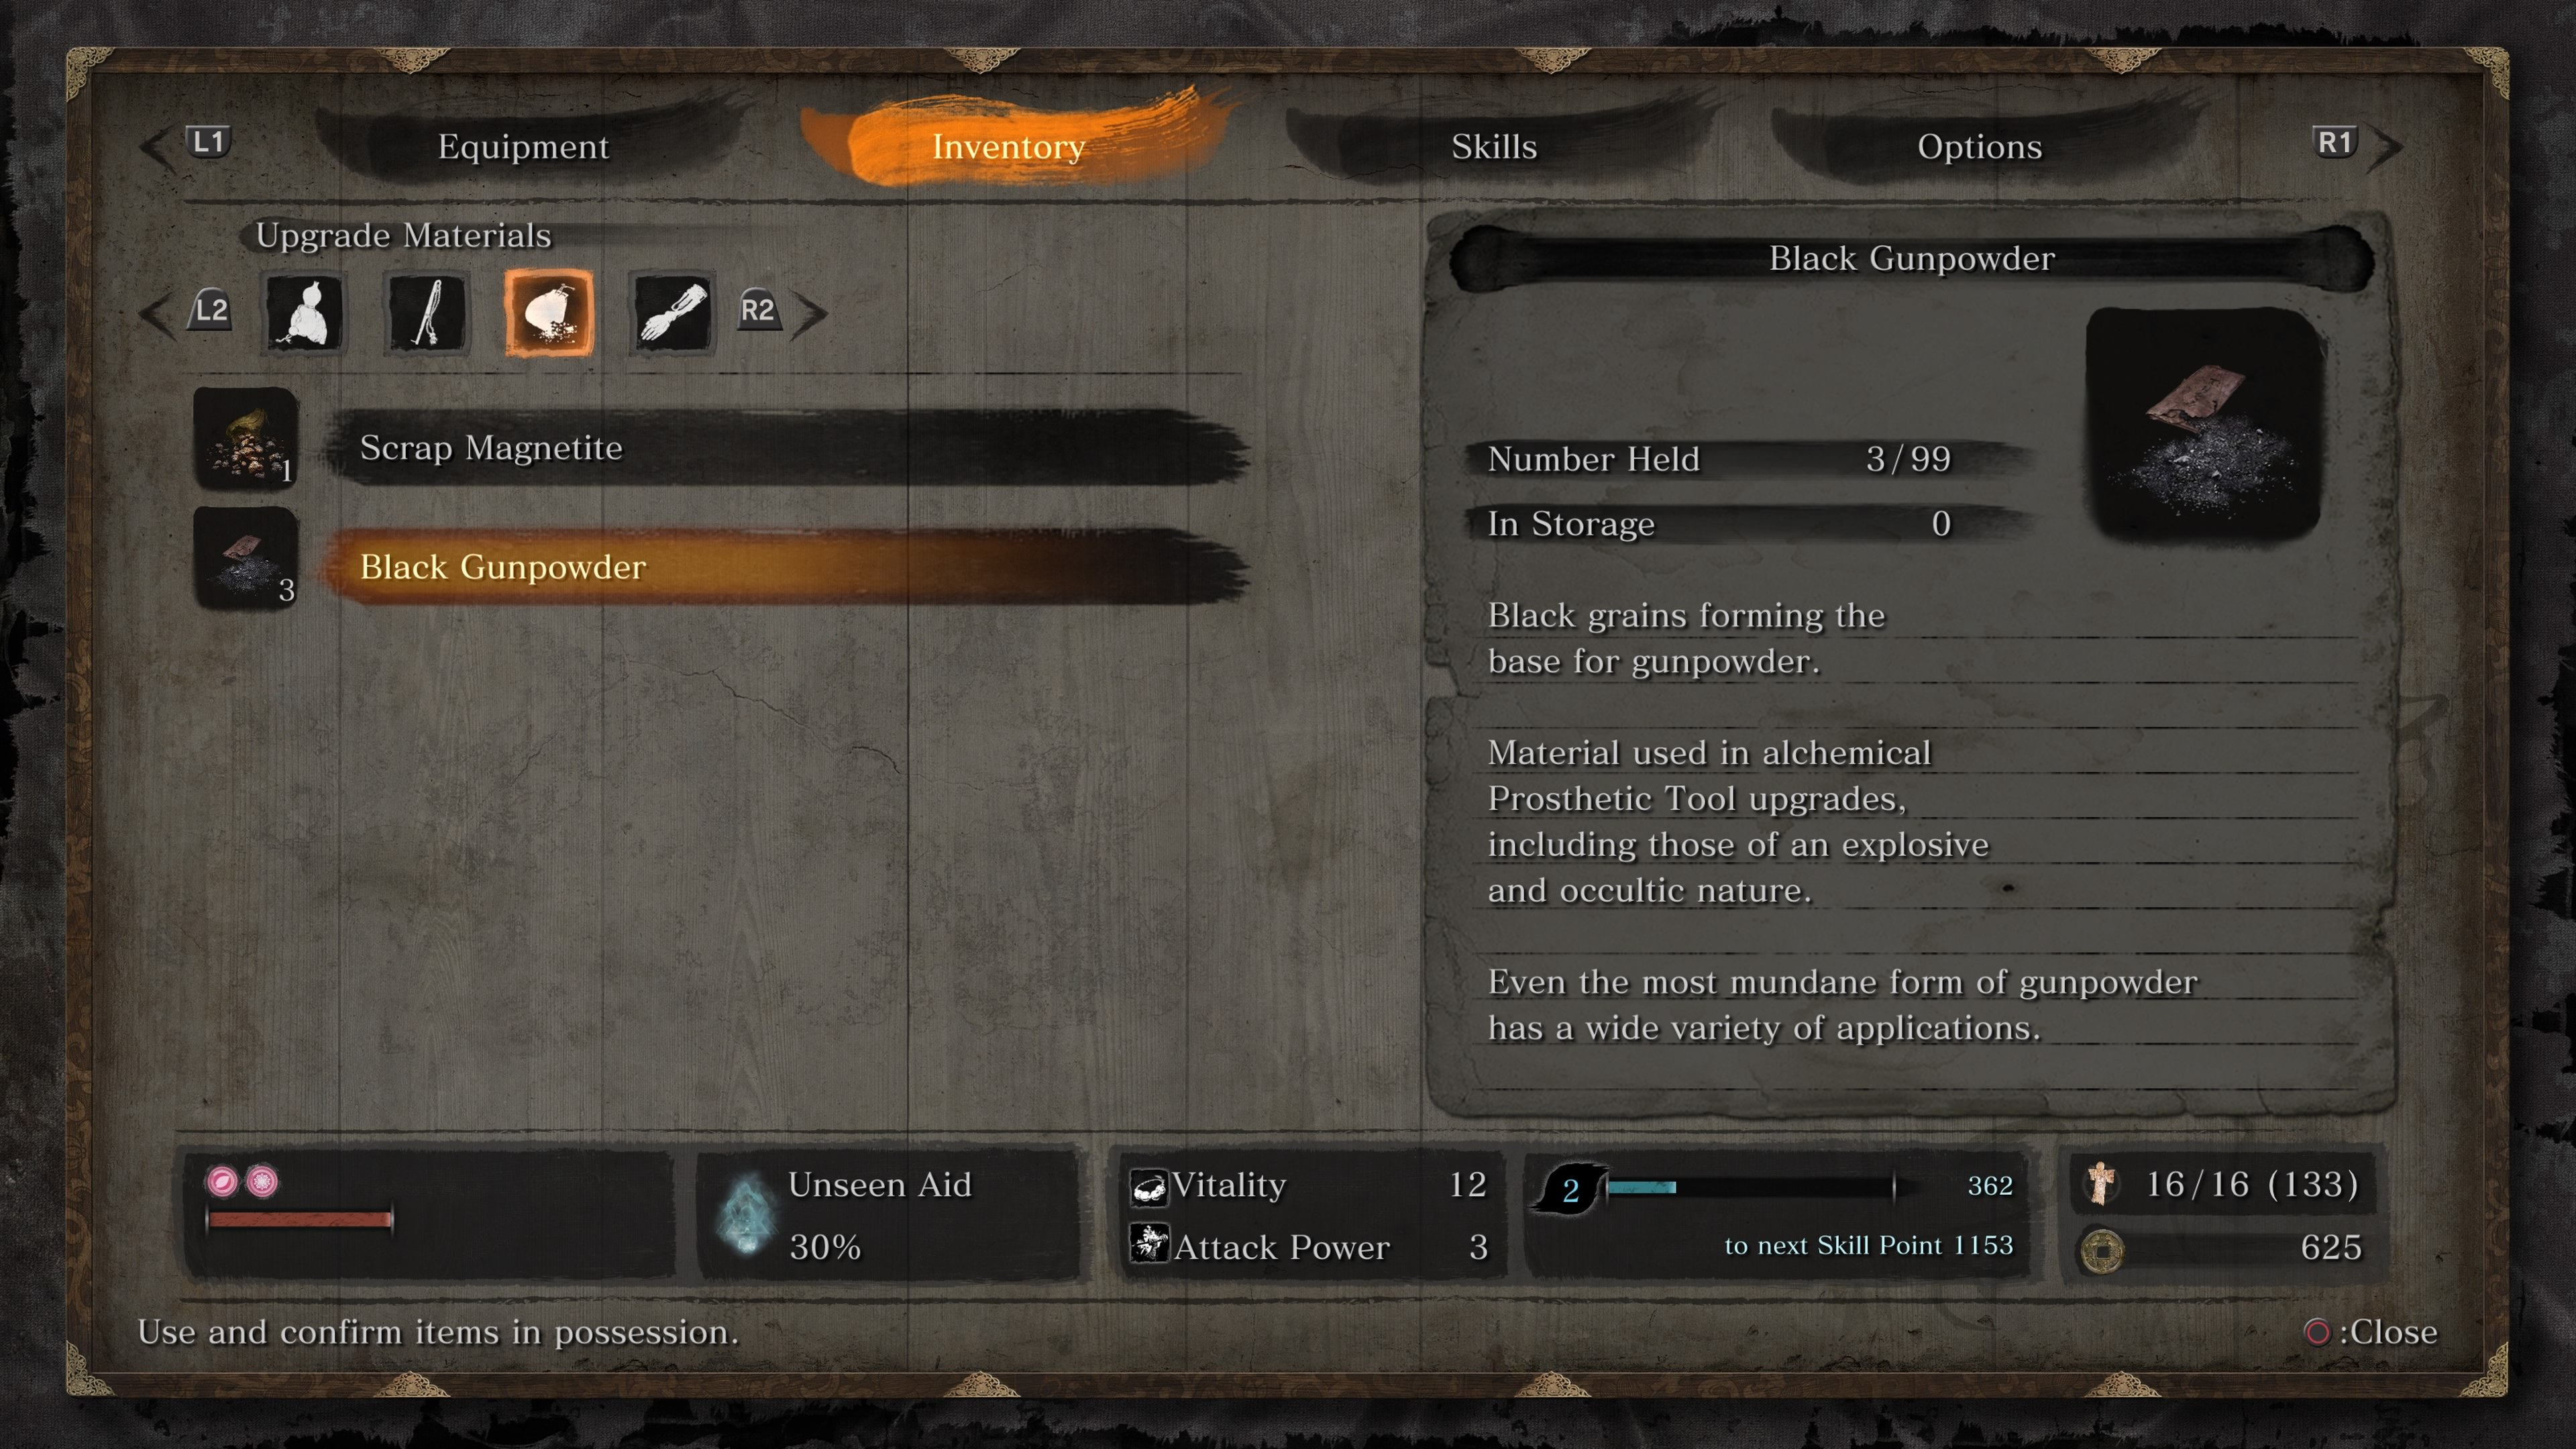 Where to find Black Gunpowder shinobi prosthetic upgrades Sekiro: Shadows Die Twice